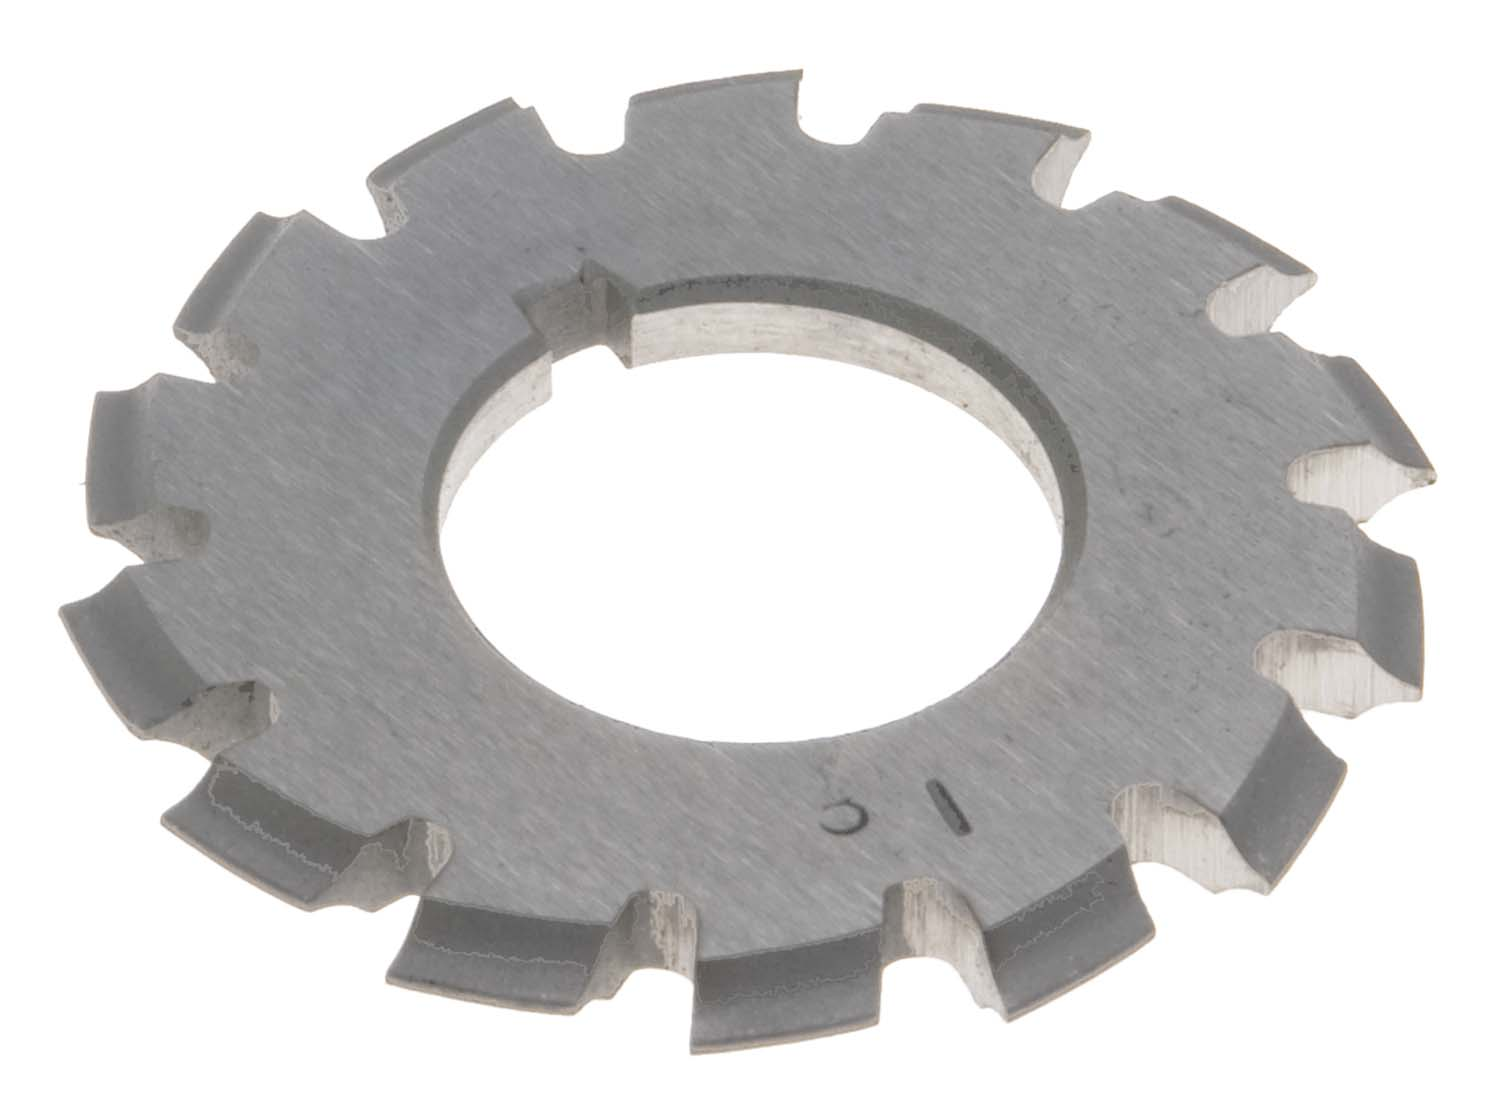 48 Diametral Pitch # 8  Involute Gear Cutter - 7/8 ID - 14-1/2 Degree Pressure Angle